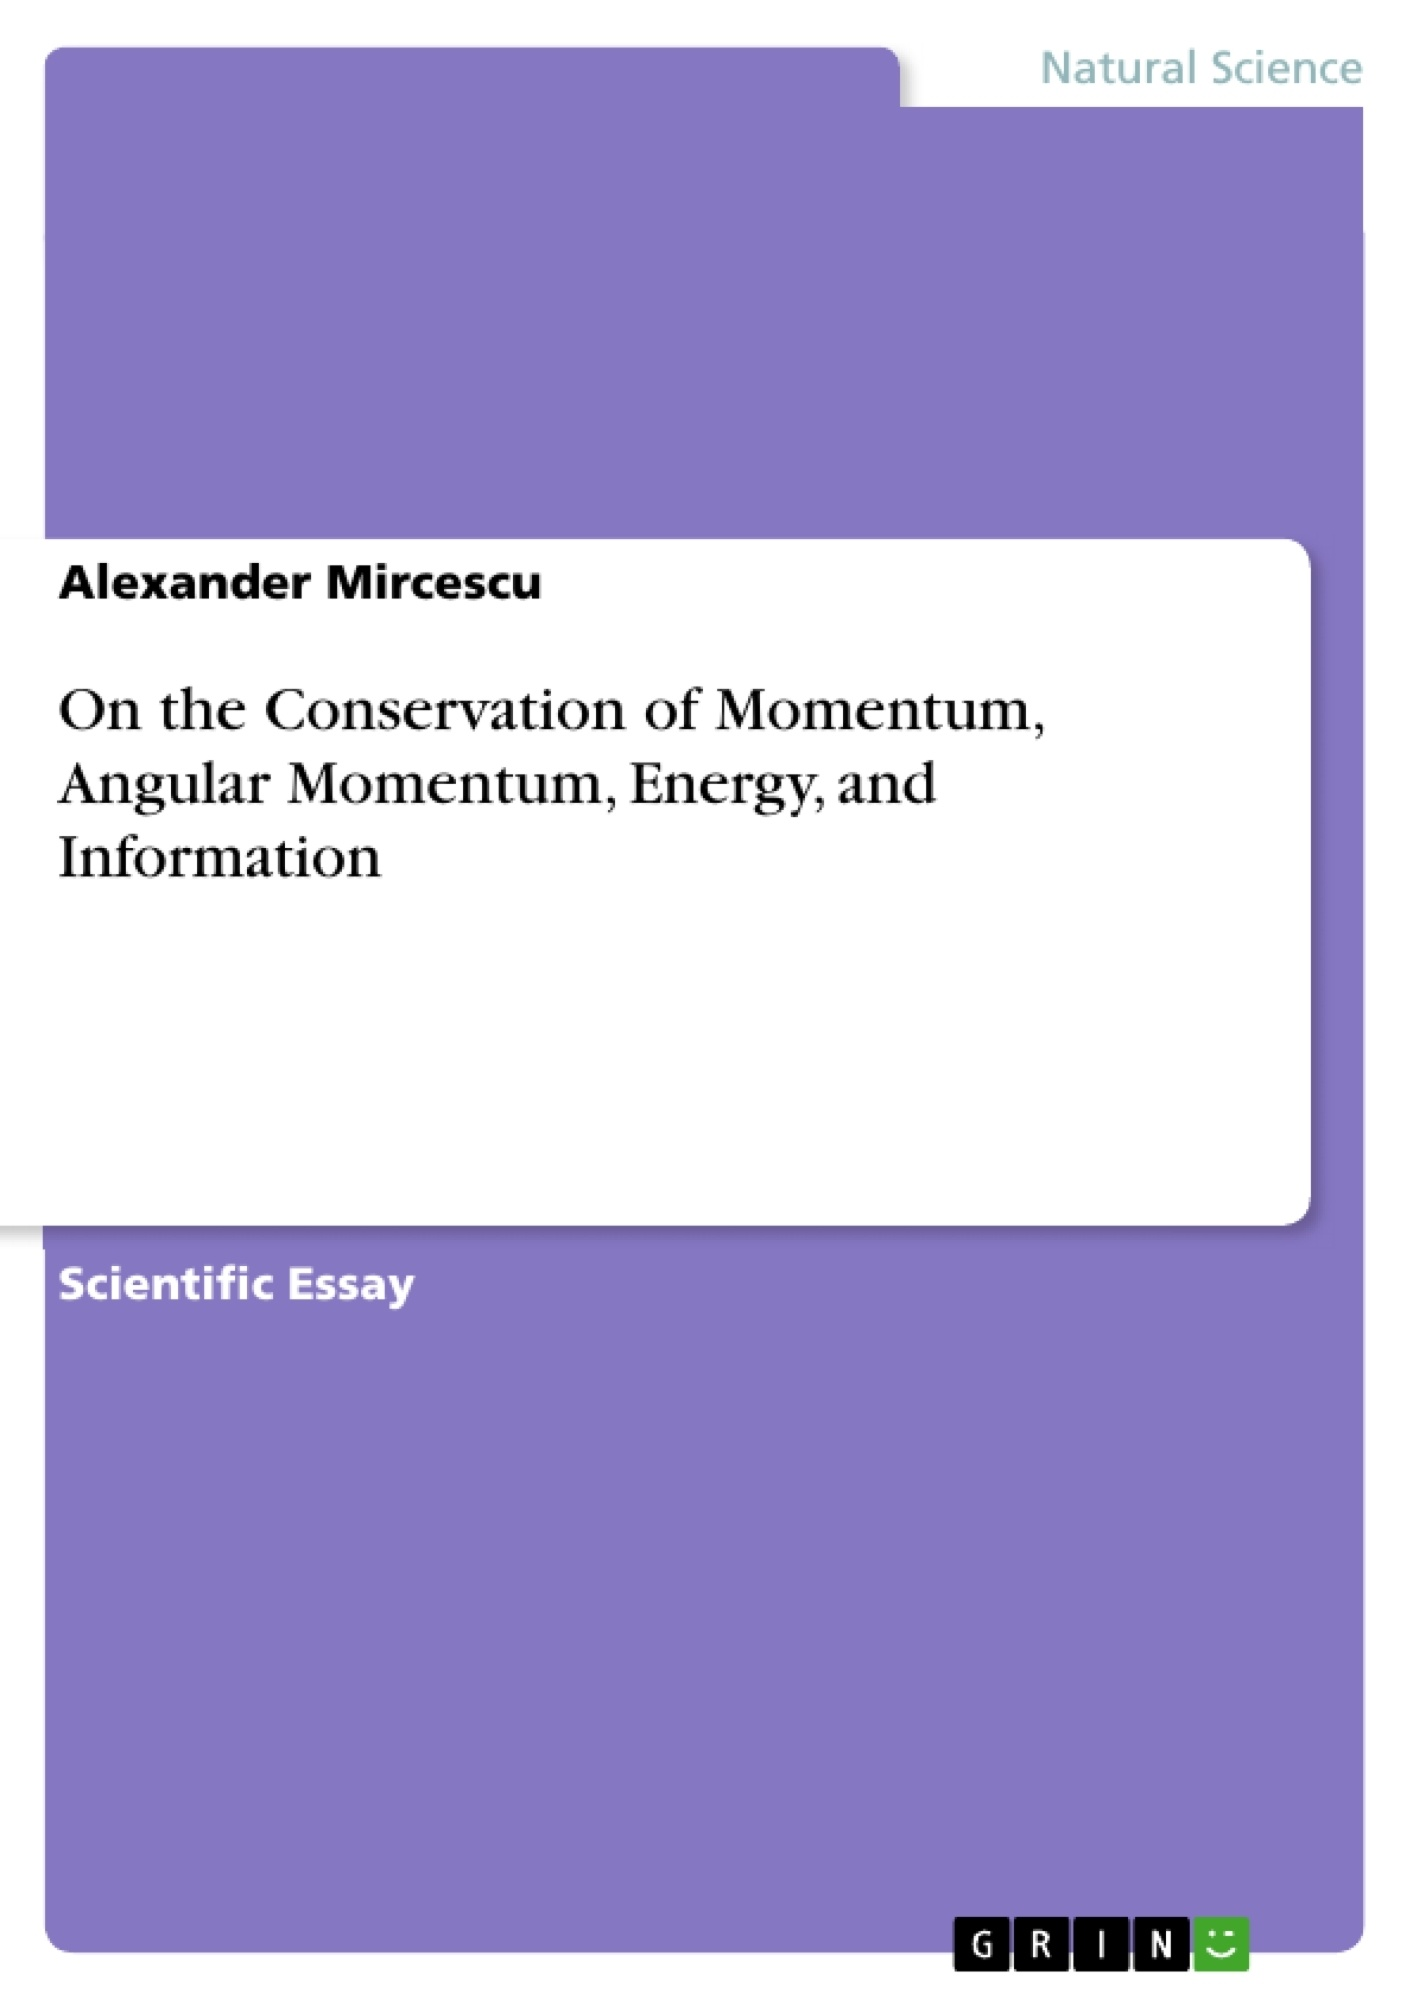 Title: On the Conservation of Momentum, Angular Momentum, Energy, and Information